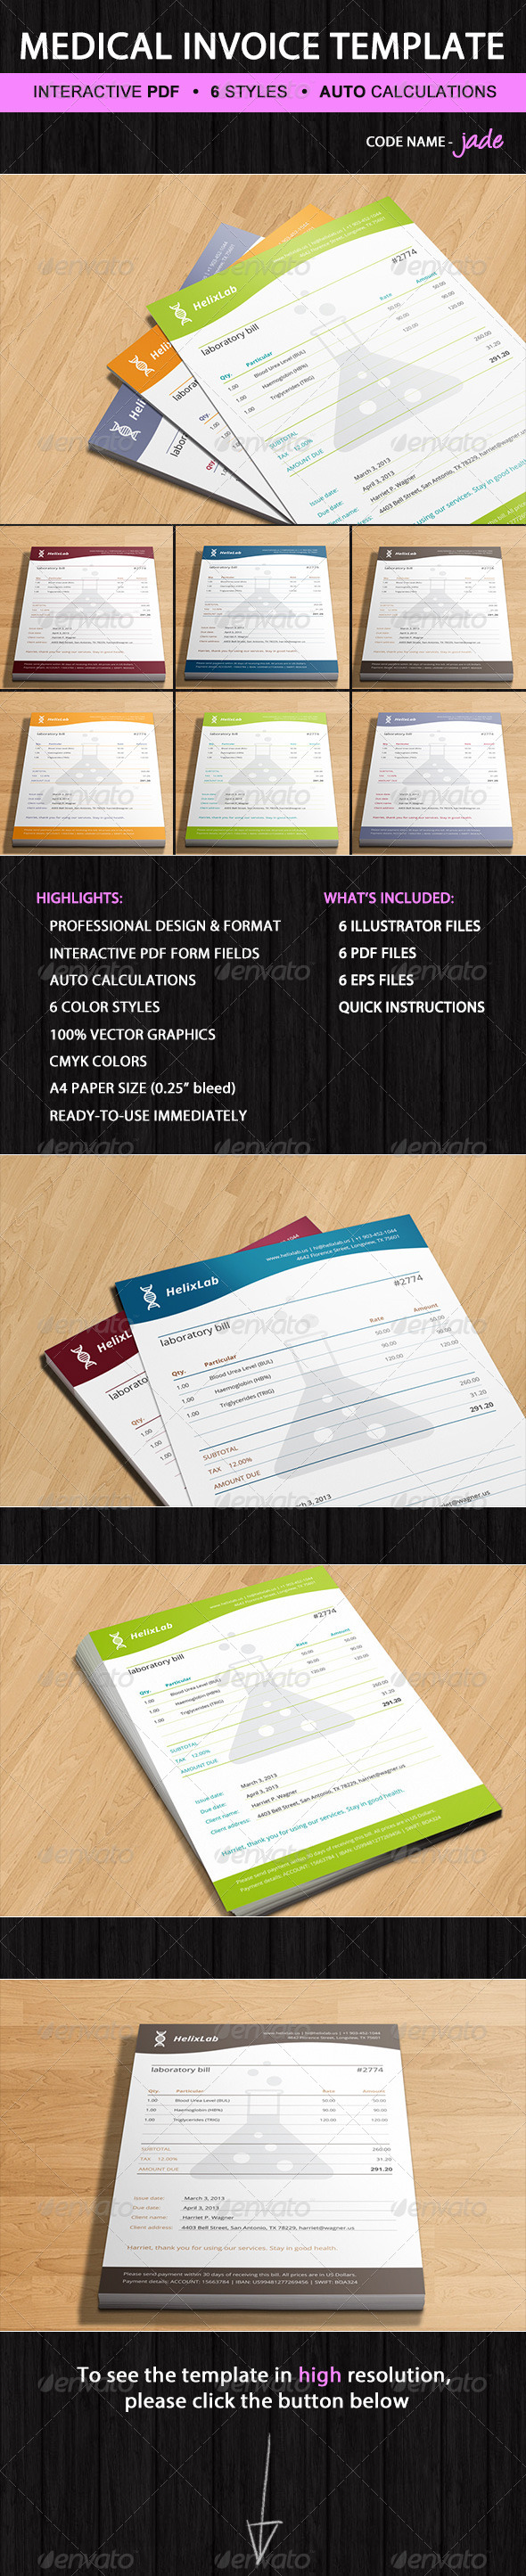 Medical Invoice Template     Medical Invoice Template  Medical     Laboratory Invoice Template